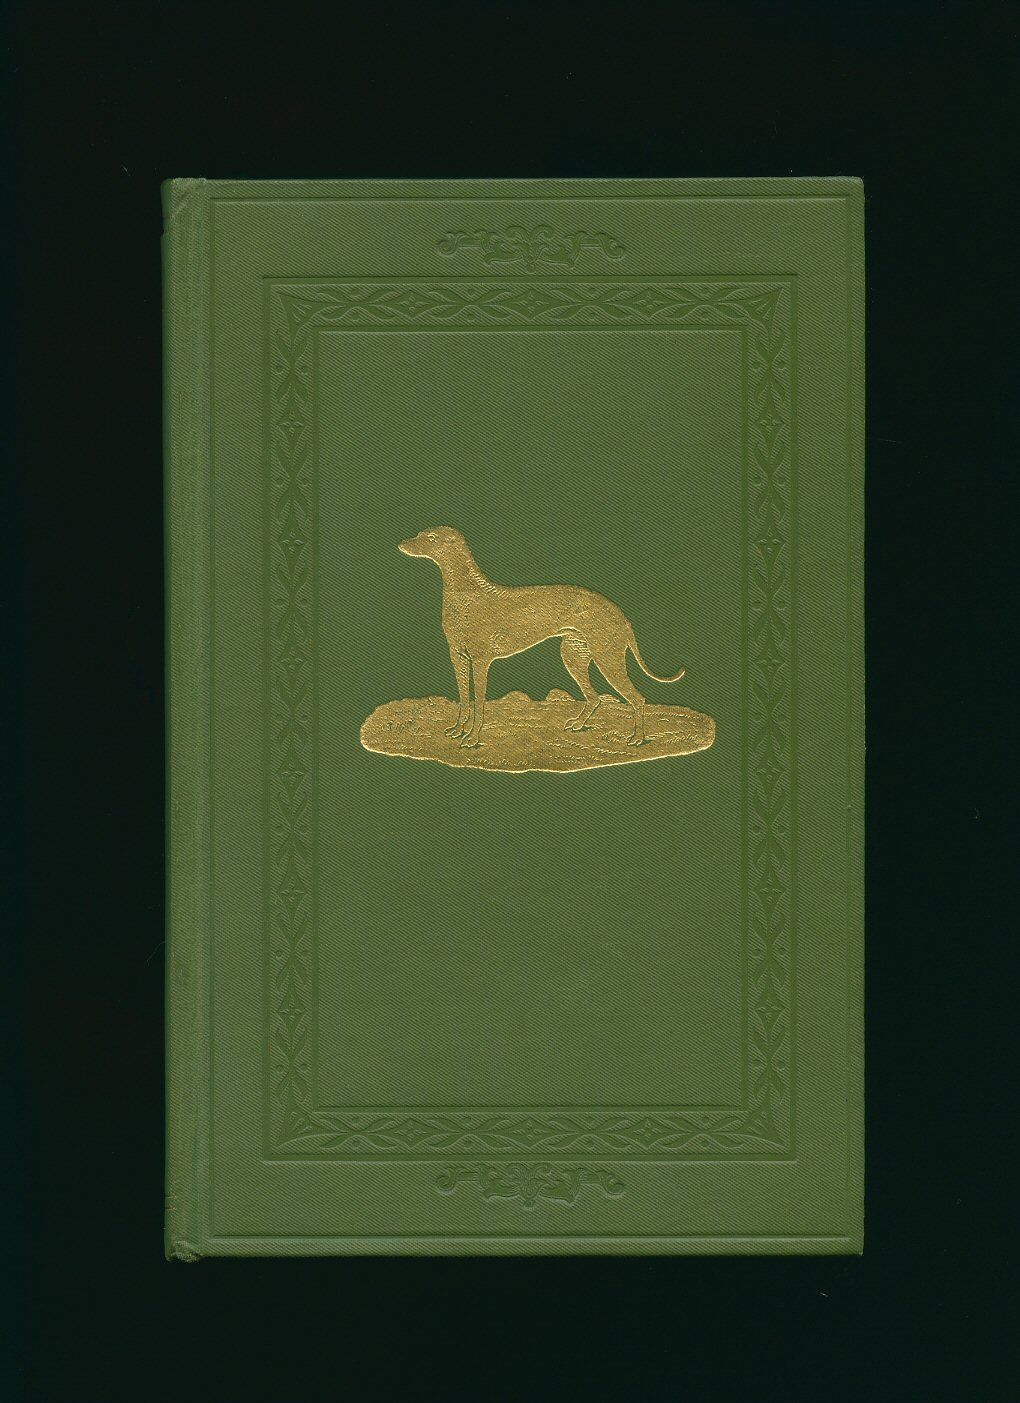 DALTON, SYDNEY H. [COMPILED BY] KEEPER OF THE GREYHOUND STUD BOOK - The Greyhound Stud Book Established by the National Coursing Club Containing the Names, Colours, Ages and Pedigrees of Greyhounds Registered Therein up to June 30th 1945. Volume LXIV [64] 1945.